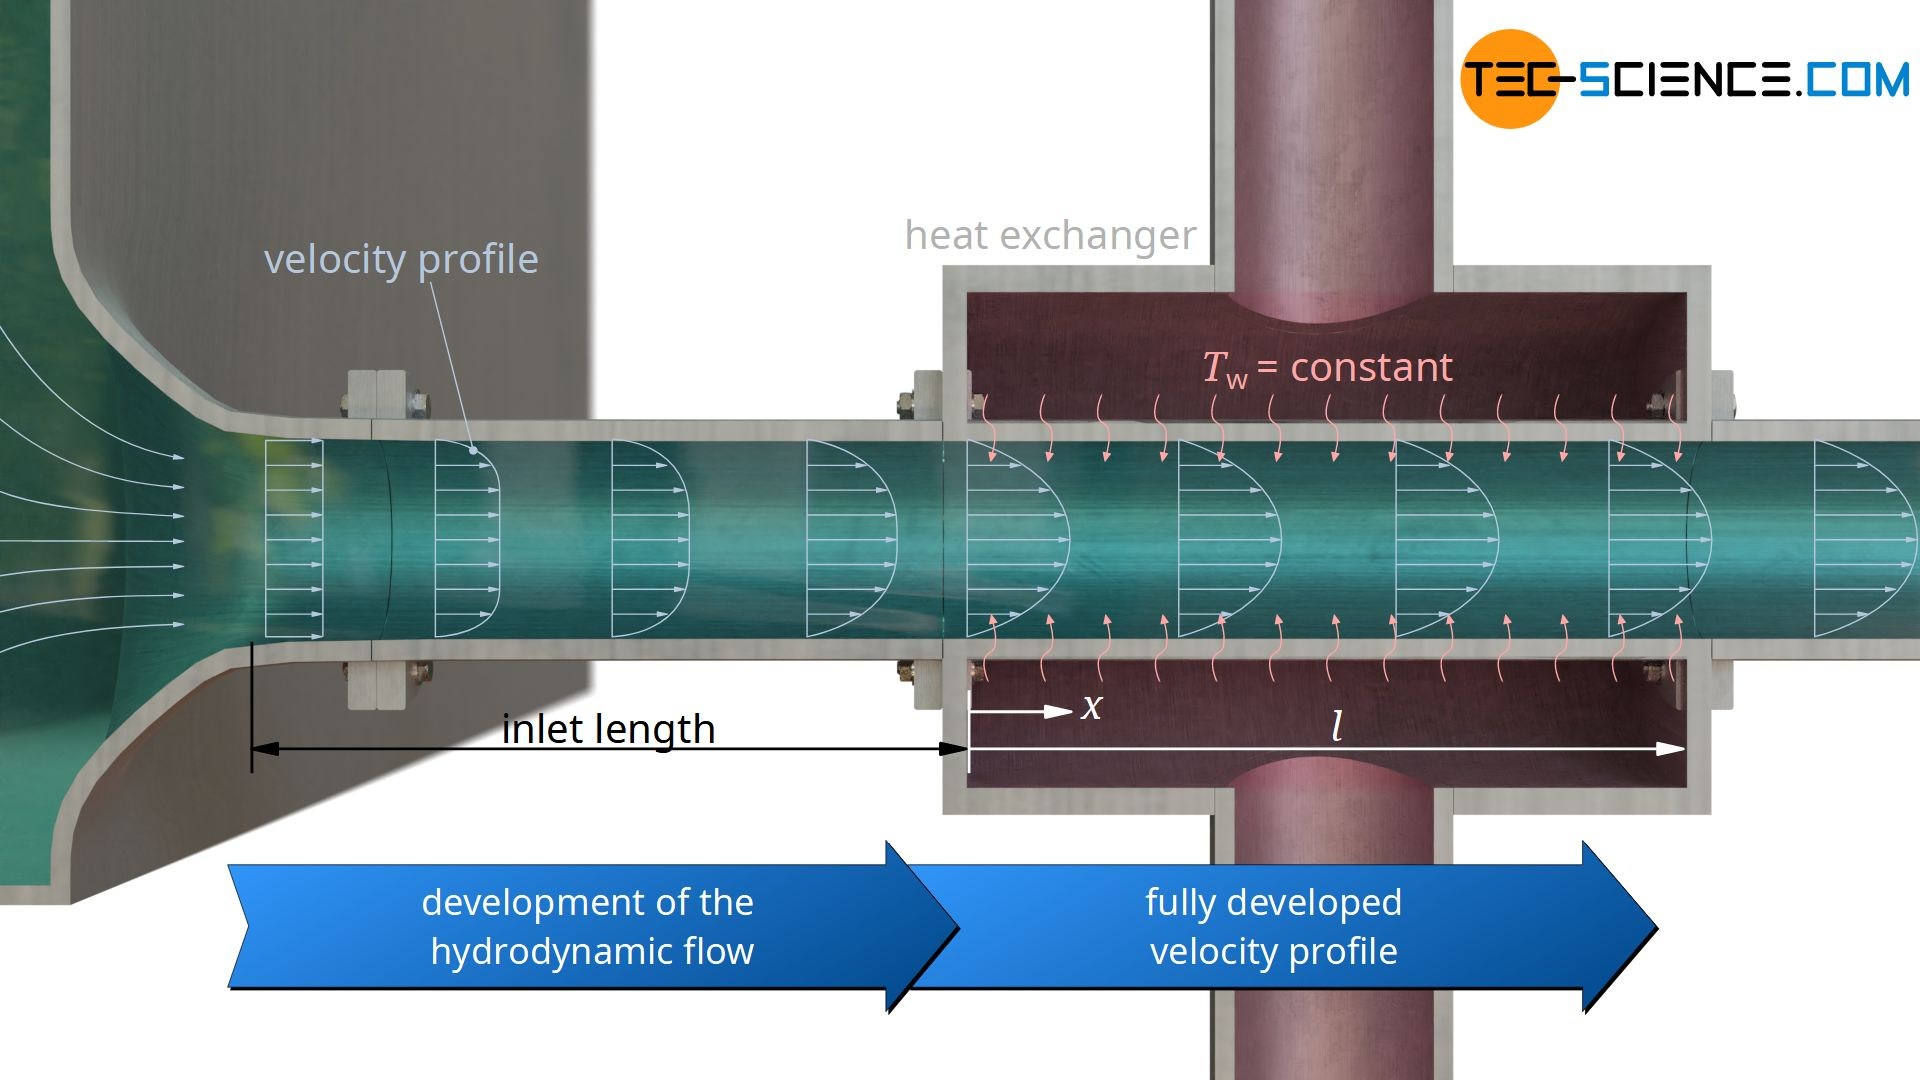 Convective heat transfer with a hydrodynamically fully developed flow (velocity profile) and constant wall temperature